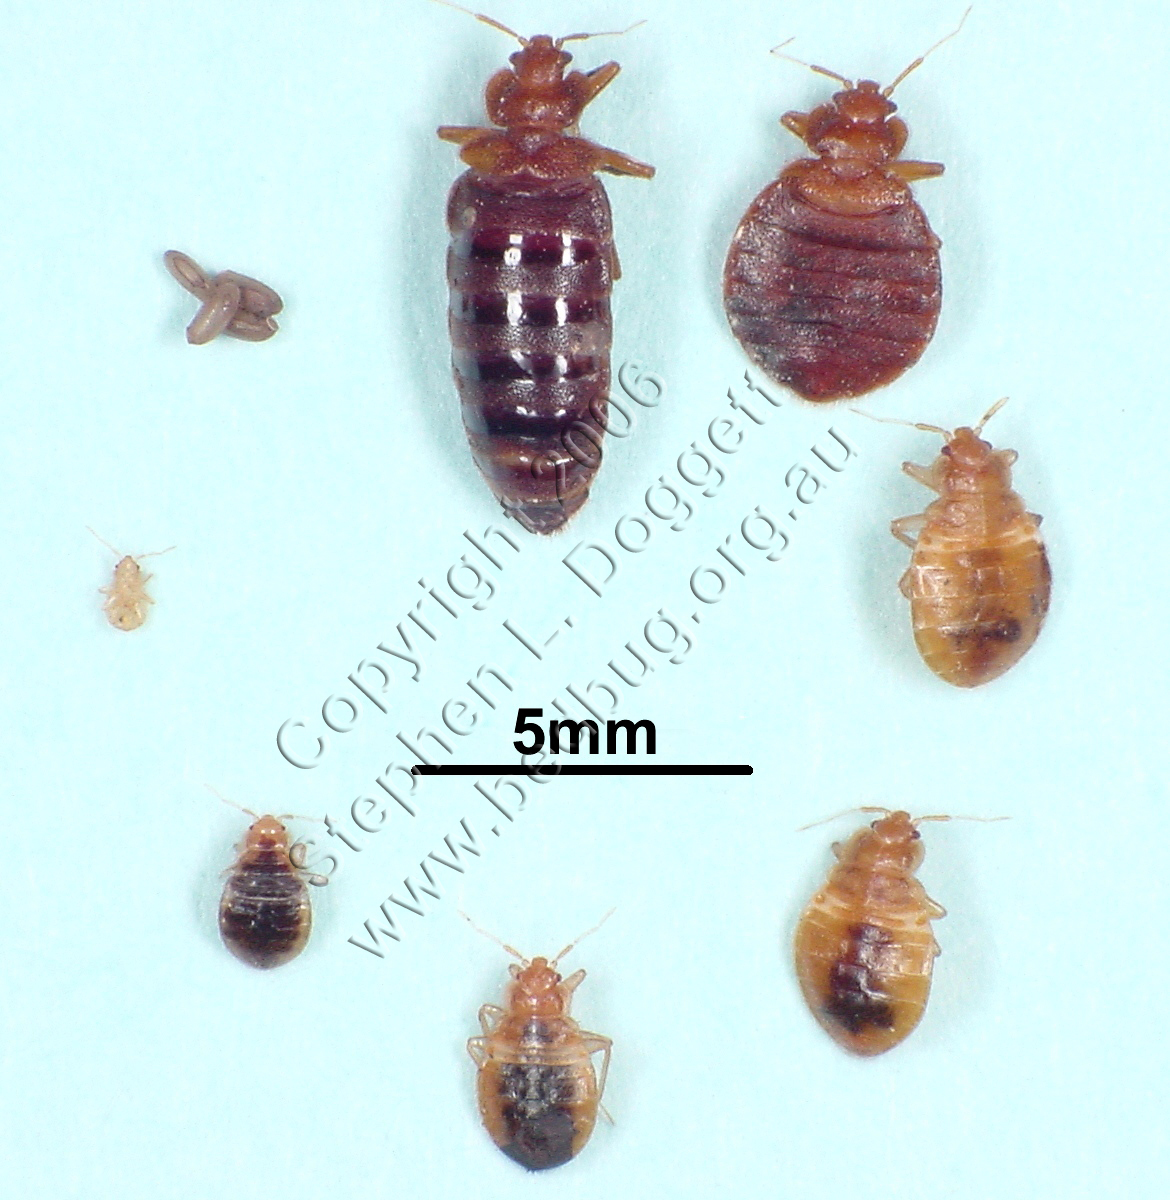 Nerd Kills Bed Bugs: Scan Phase